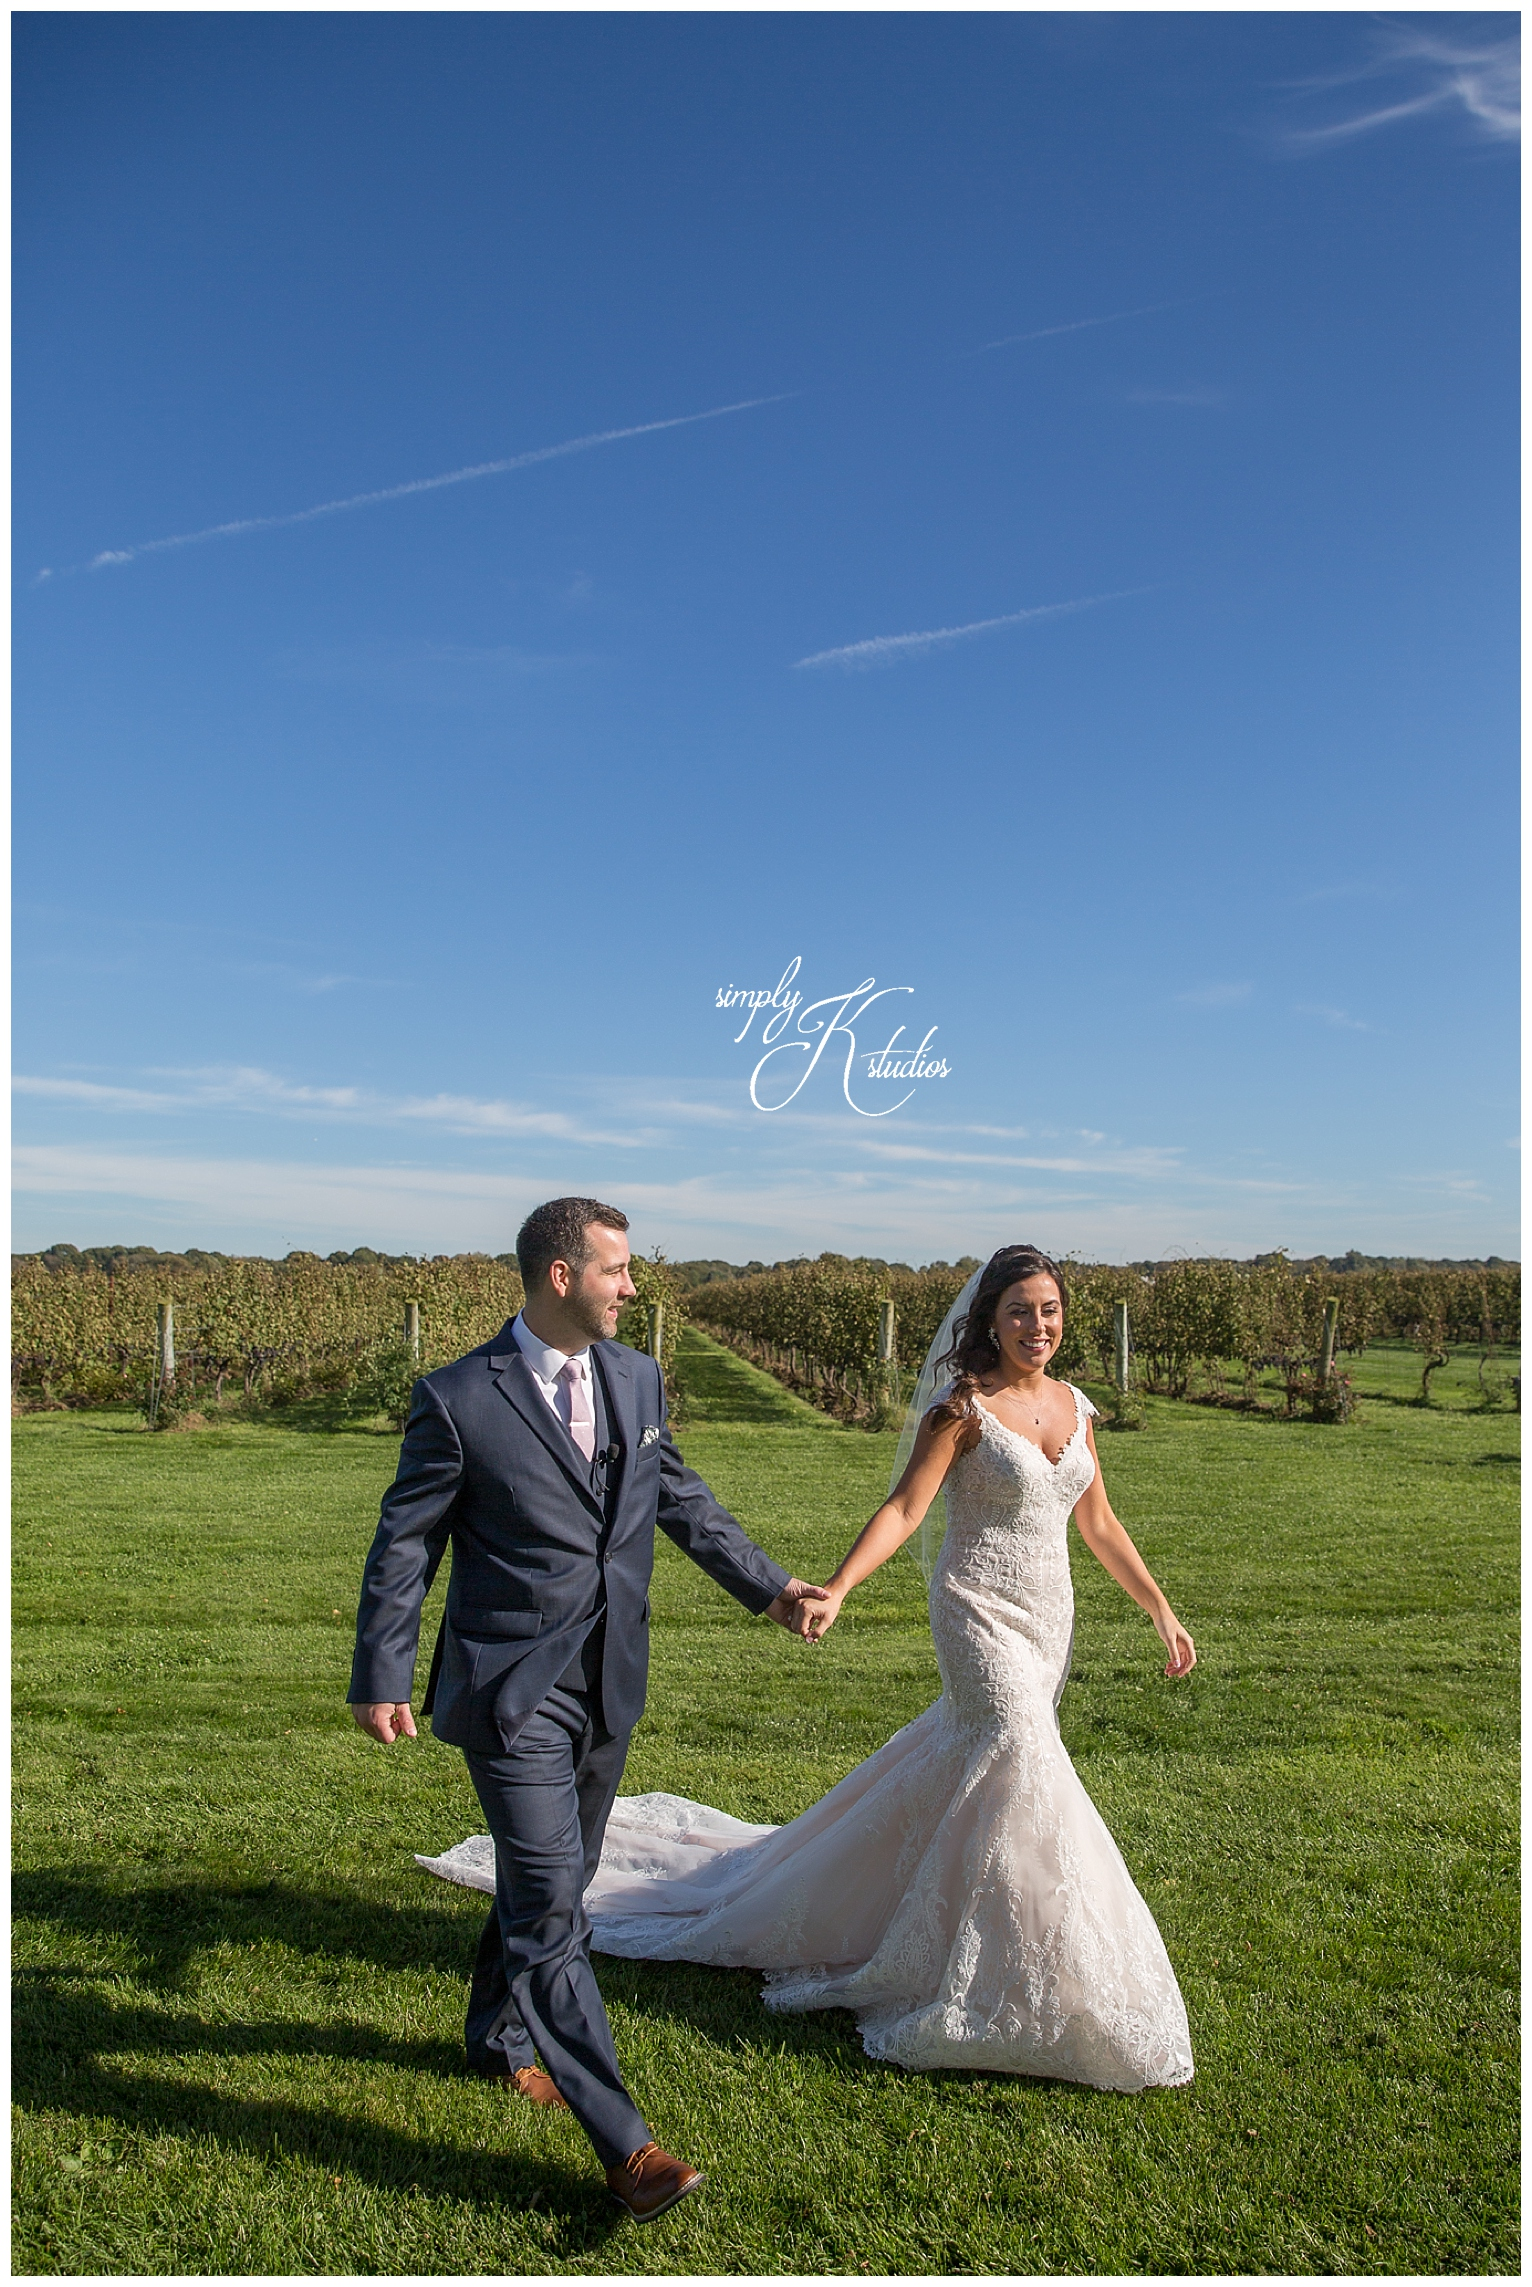 42 Wedding Photos at Saltwater Farm Vineyard.jpg